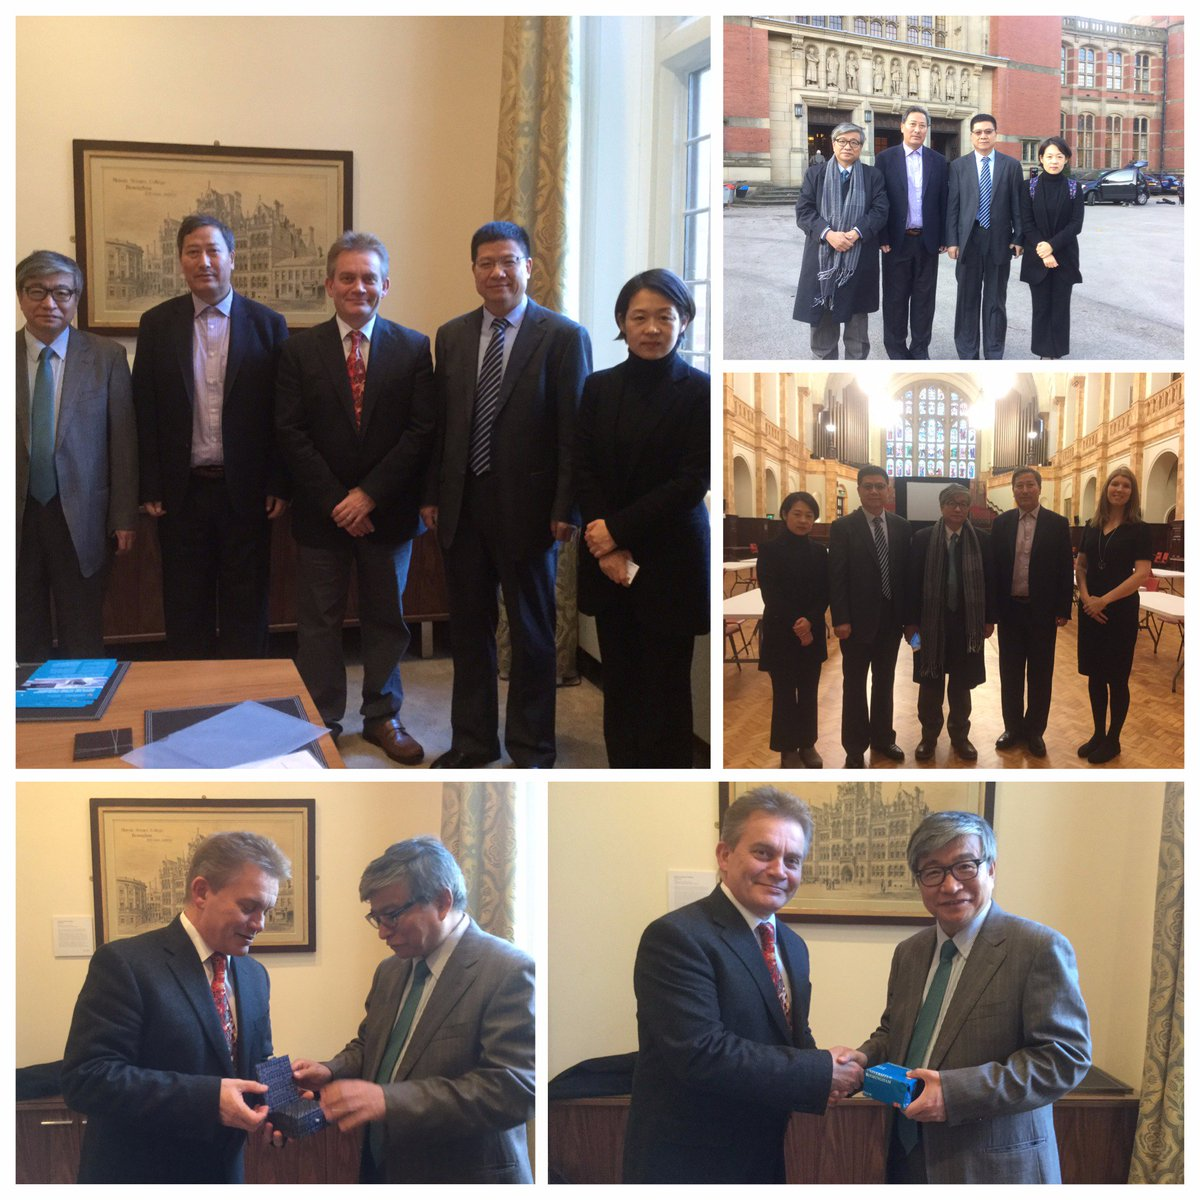 Prof Jon Frampton welcomes colleagues from Minzu for discussions to enhance our collaboration @news_ub #maths #physics #arts #engineering<br>http://pic.twitter.com/8xvAWRMZgd